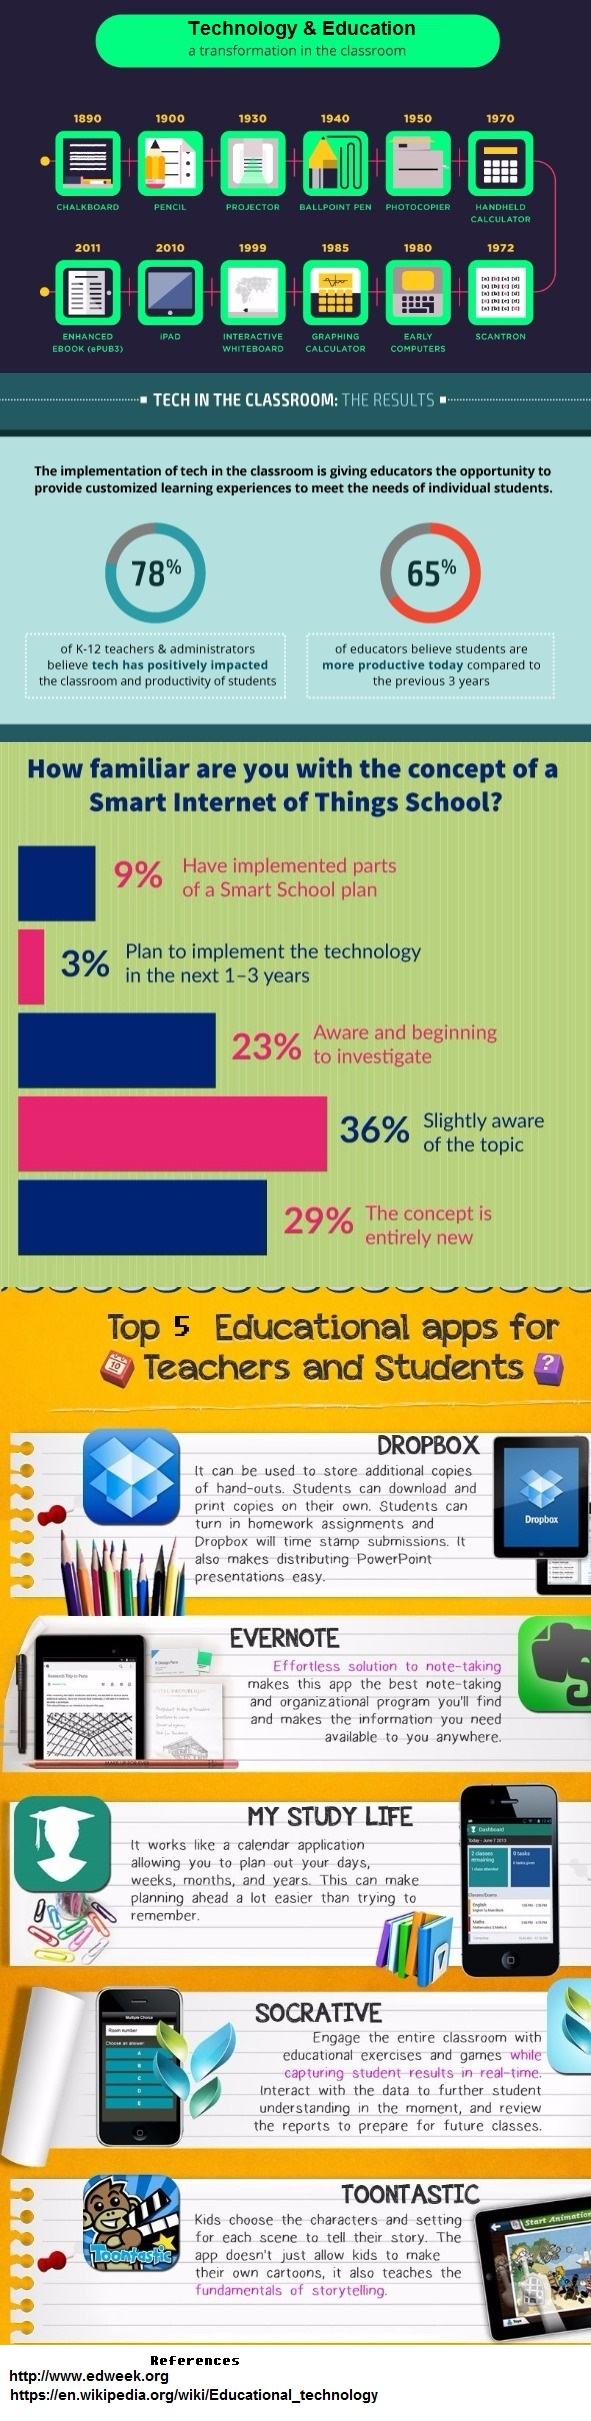 Education and Technology [Infographic]